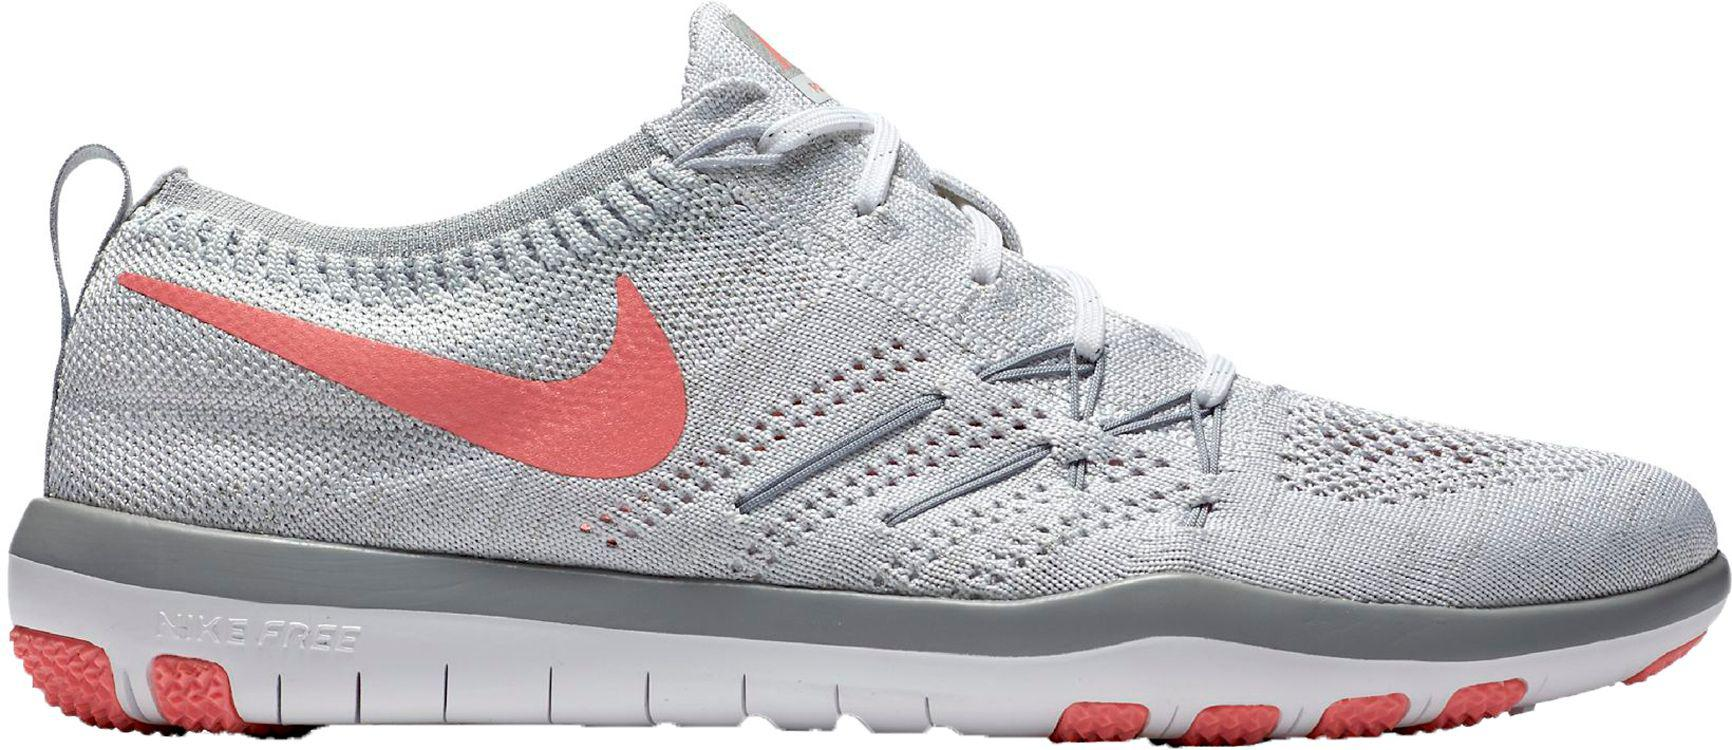 3bc6d6a65d3e Lyst - Nike Free Tr Focus Flyknit Training Shoes in White for Men